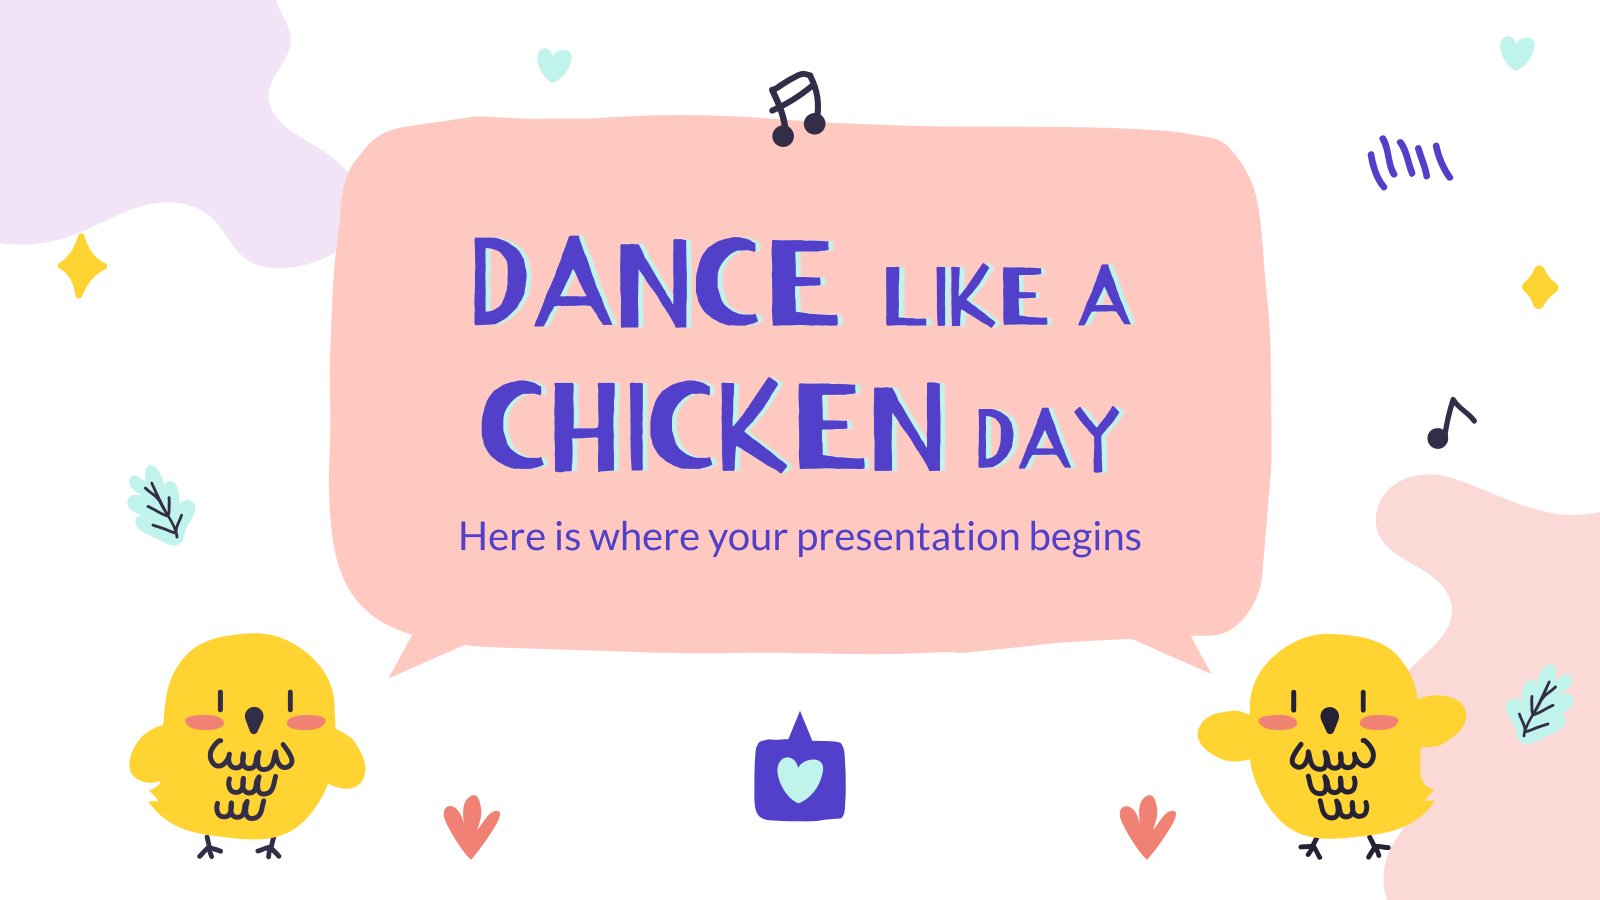 Dance Like a Chicken Day presentation template